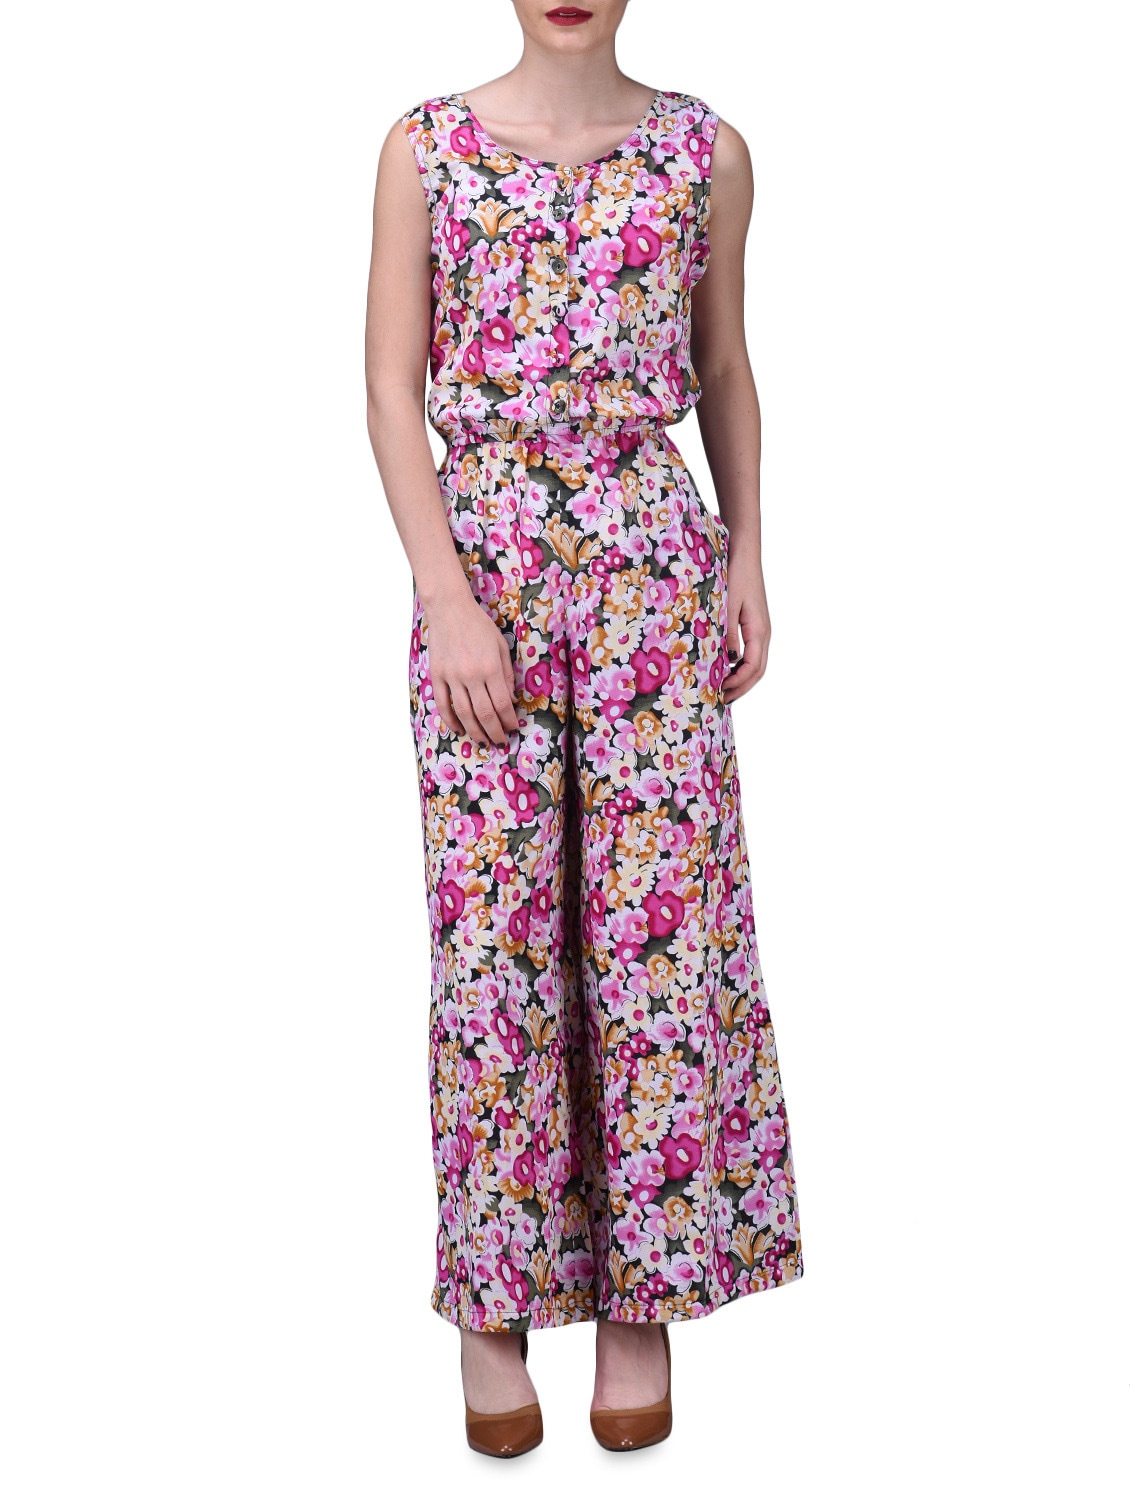 Pink Floral Print Sleeveless Jumpsuit - By